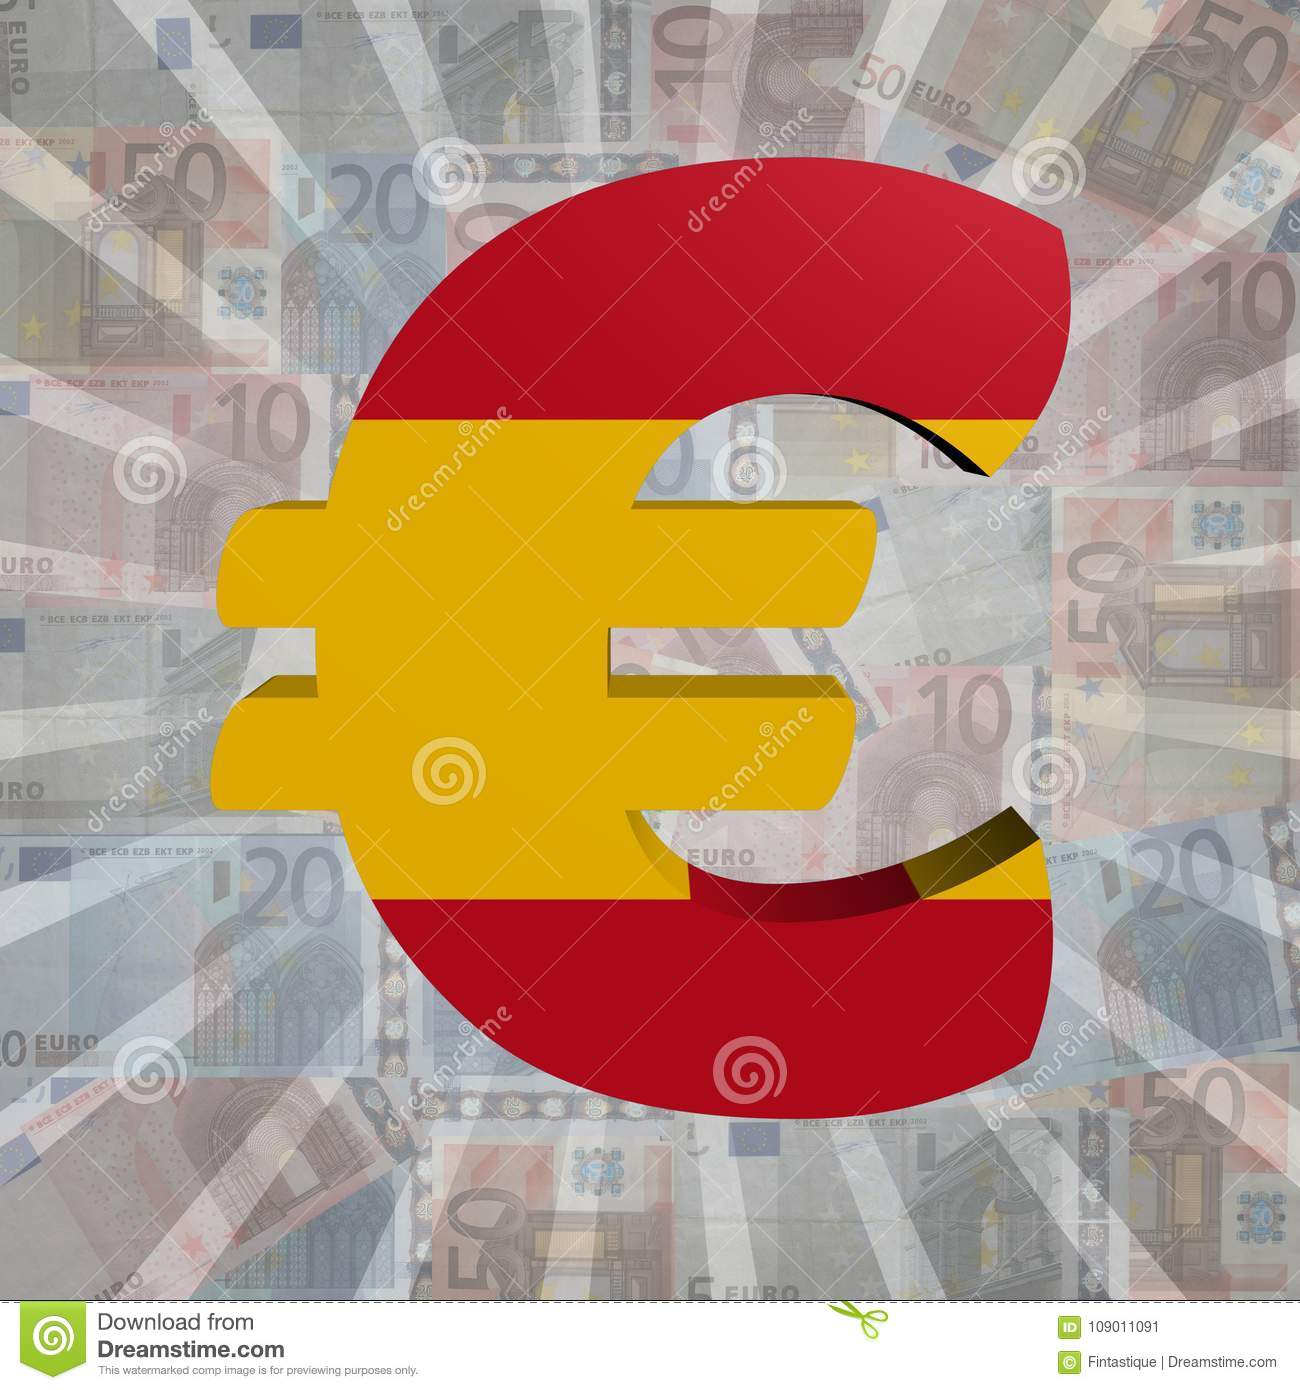 Euro Symbol With Spanish Flag On Euro Currency Illustration Stock